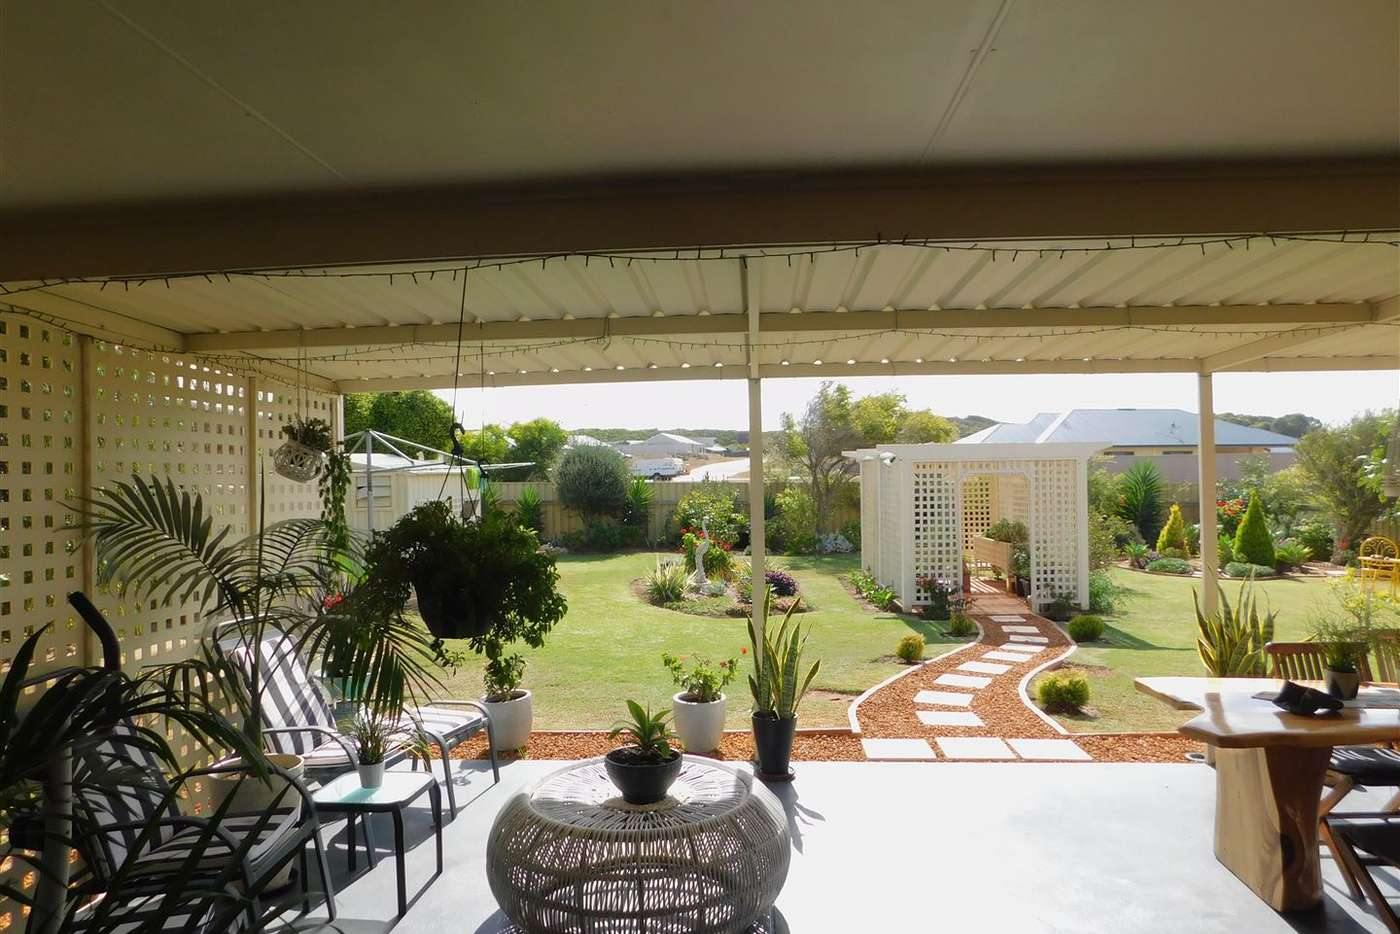 Main view of Homely house listing, 5 Delmage St, Dongara WA 6525